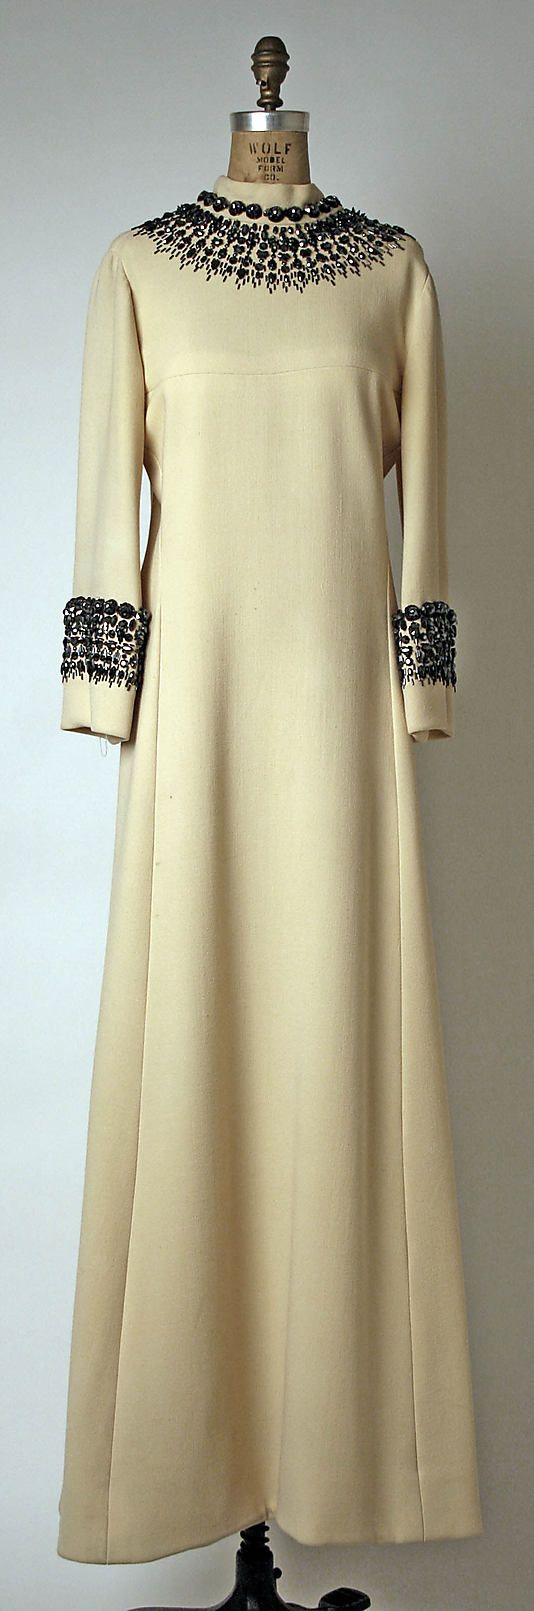 1966 Evening dress by House of Balmain.  Worn by Katharine Graham to Truman Capote's Black and White Ball given in her honor.